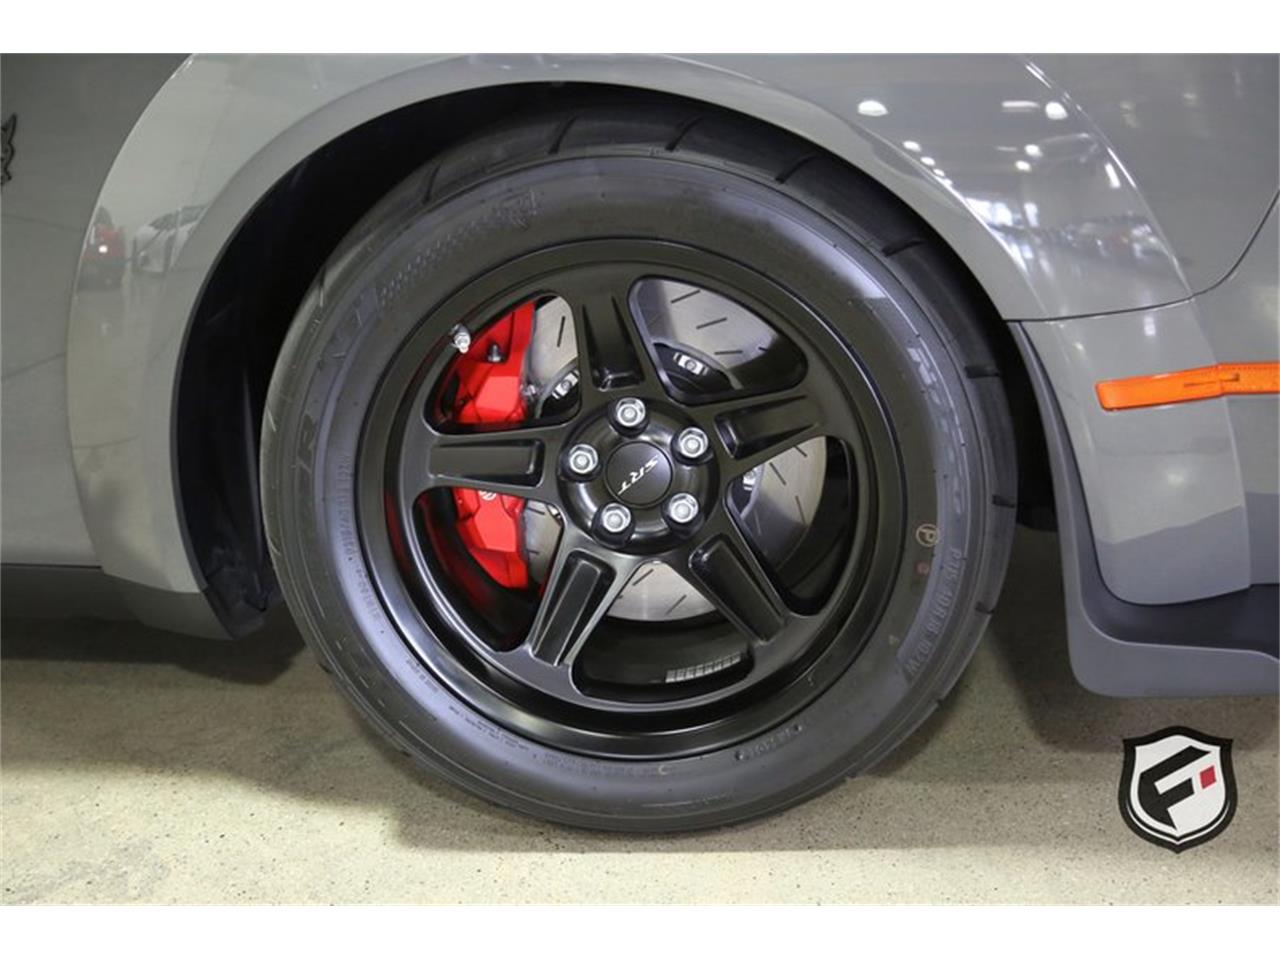 2018 Dodge Challenger (CC-1268147) for sale in Chatsworth, California